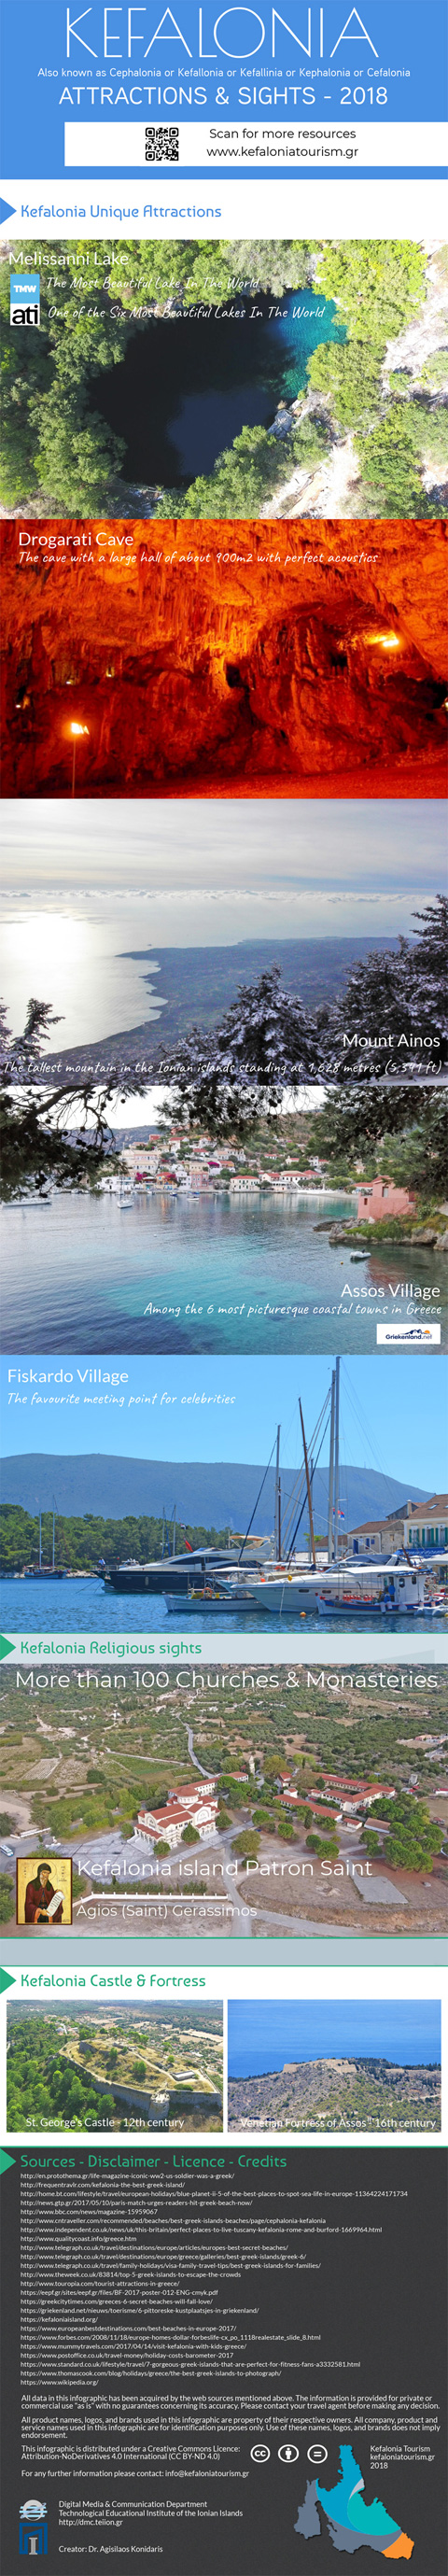 Kefalonia Attractions & Sights